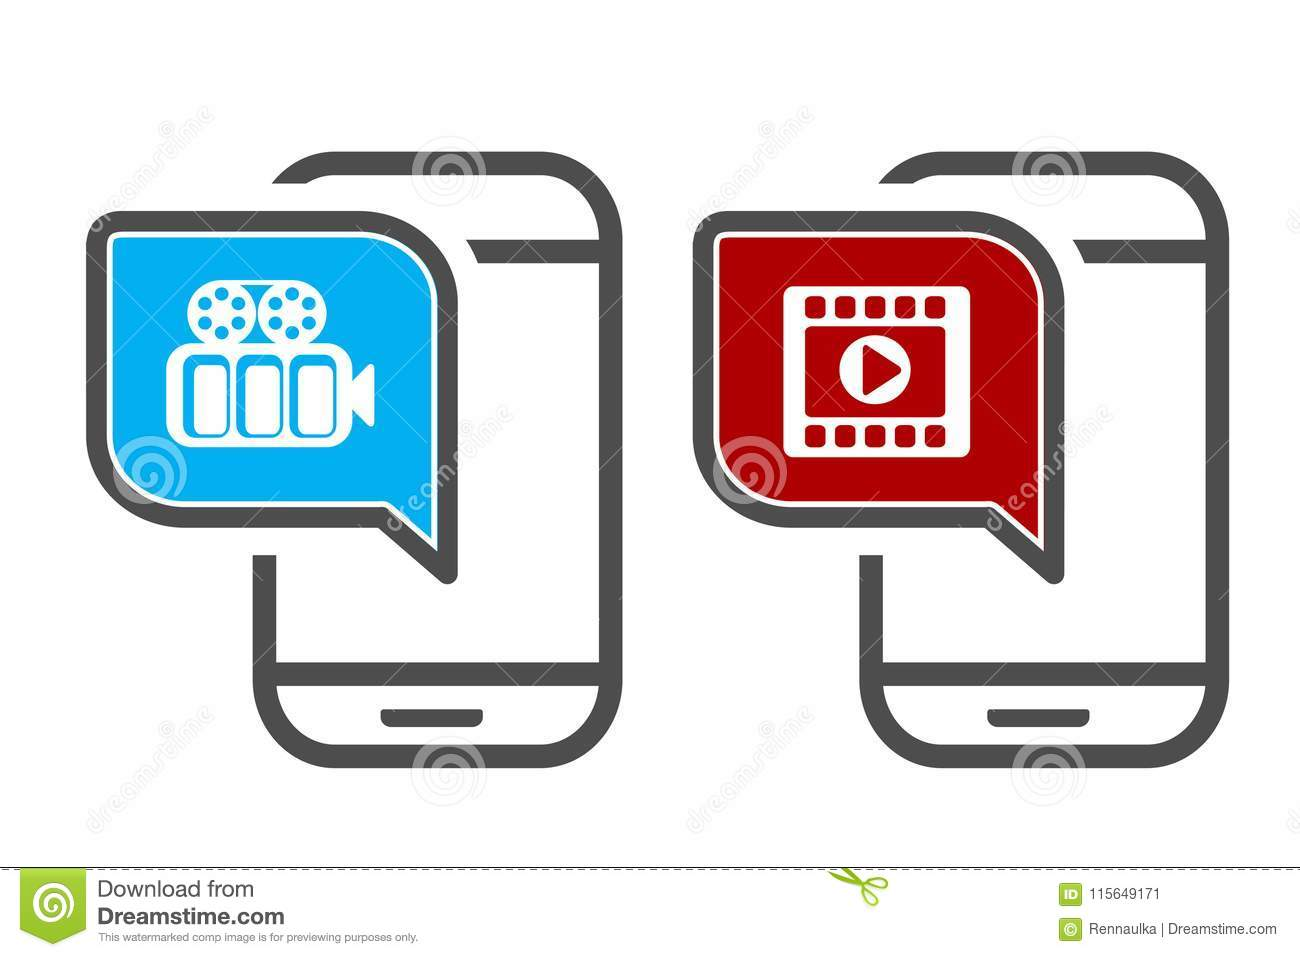 Vector Smartphone With Video Player  App Icons For Video Playback Or